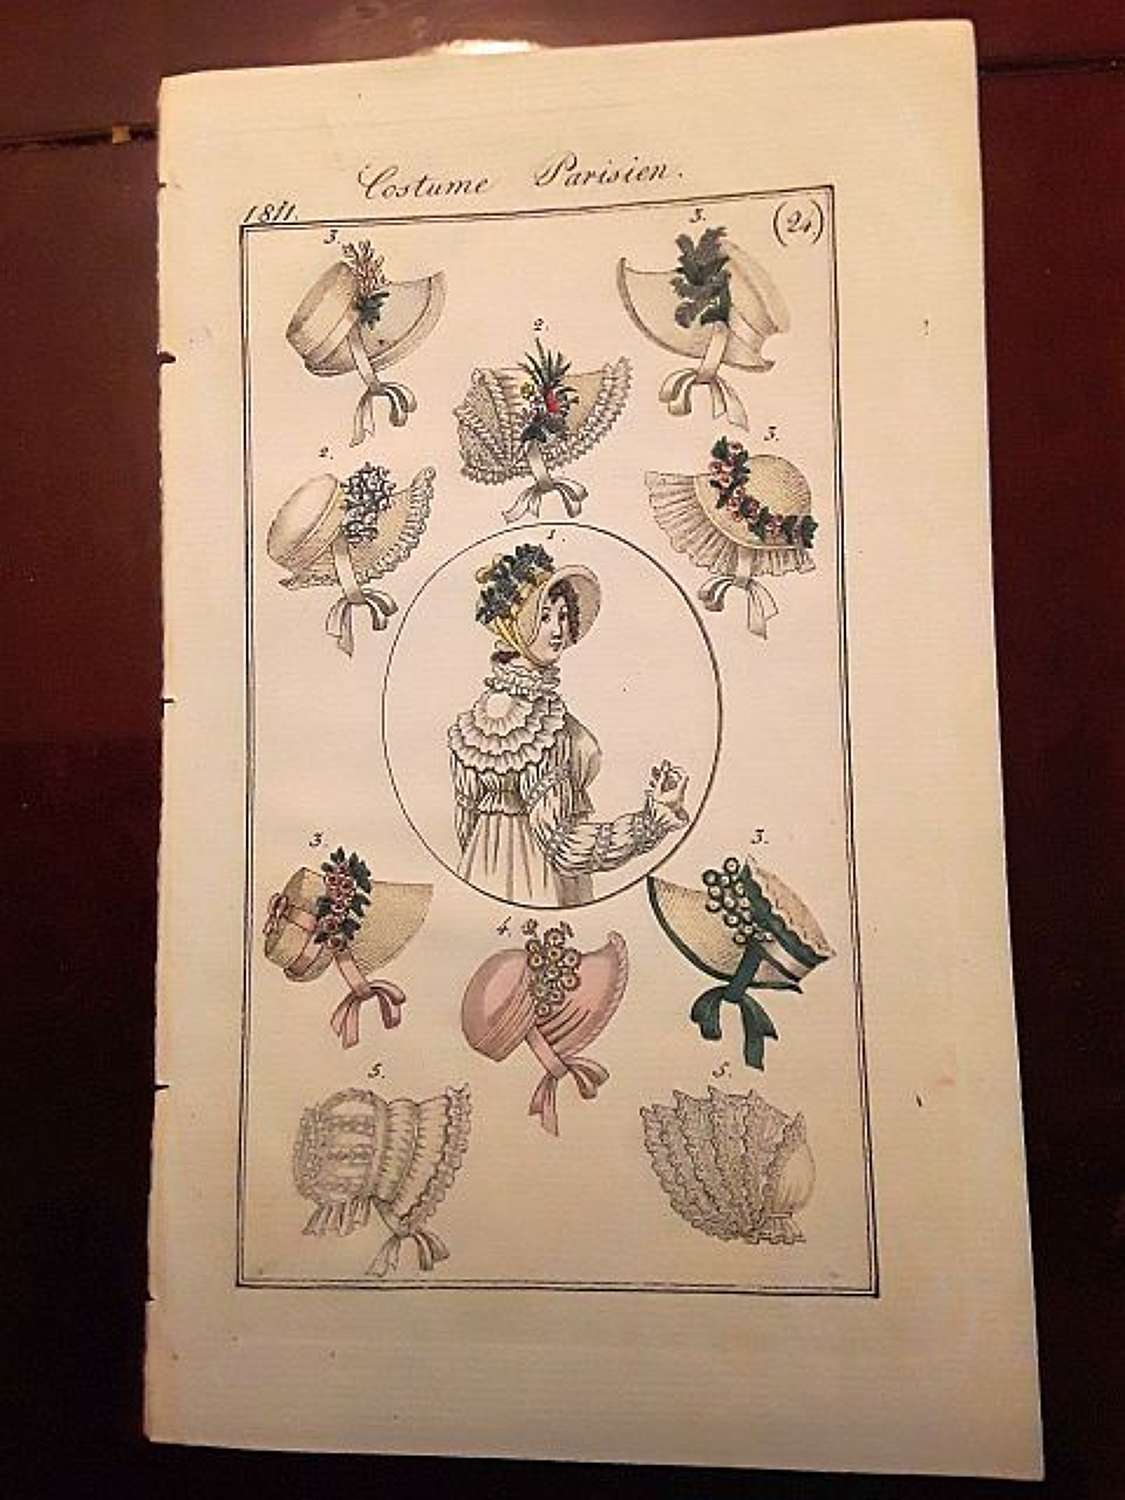 A charming antique fashion print of bonnets. French dated 1811